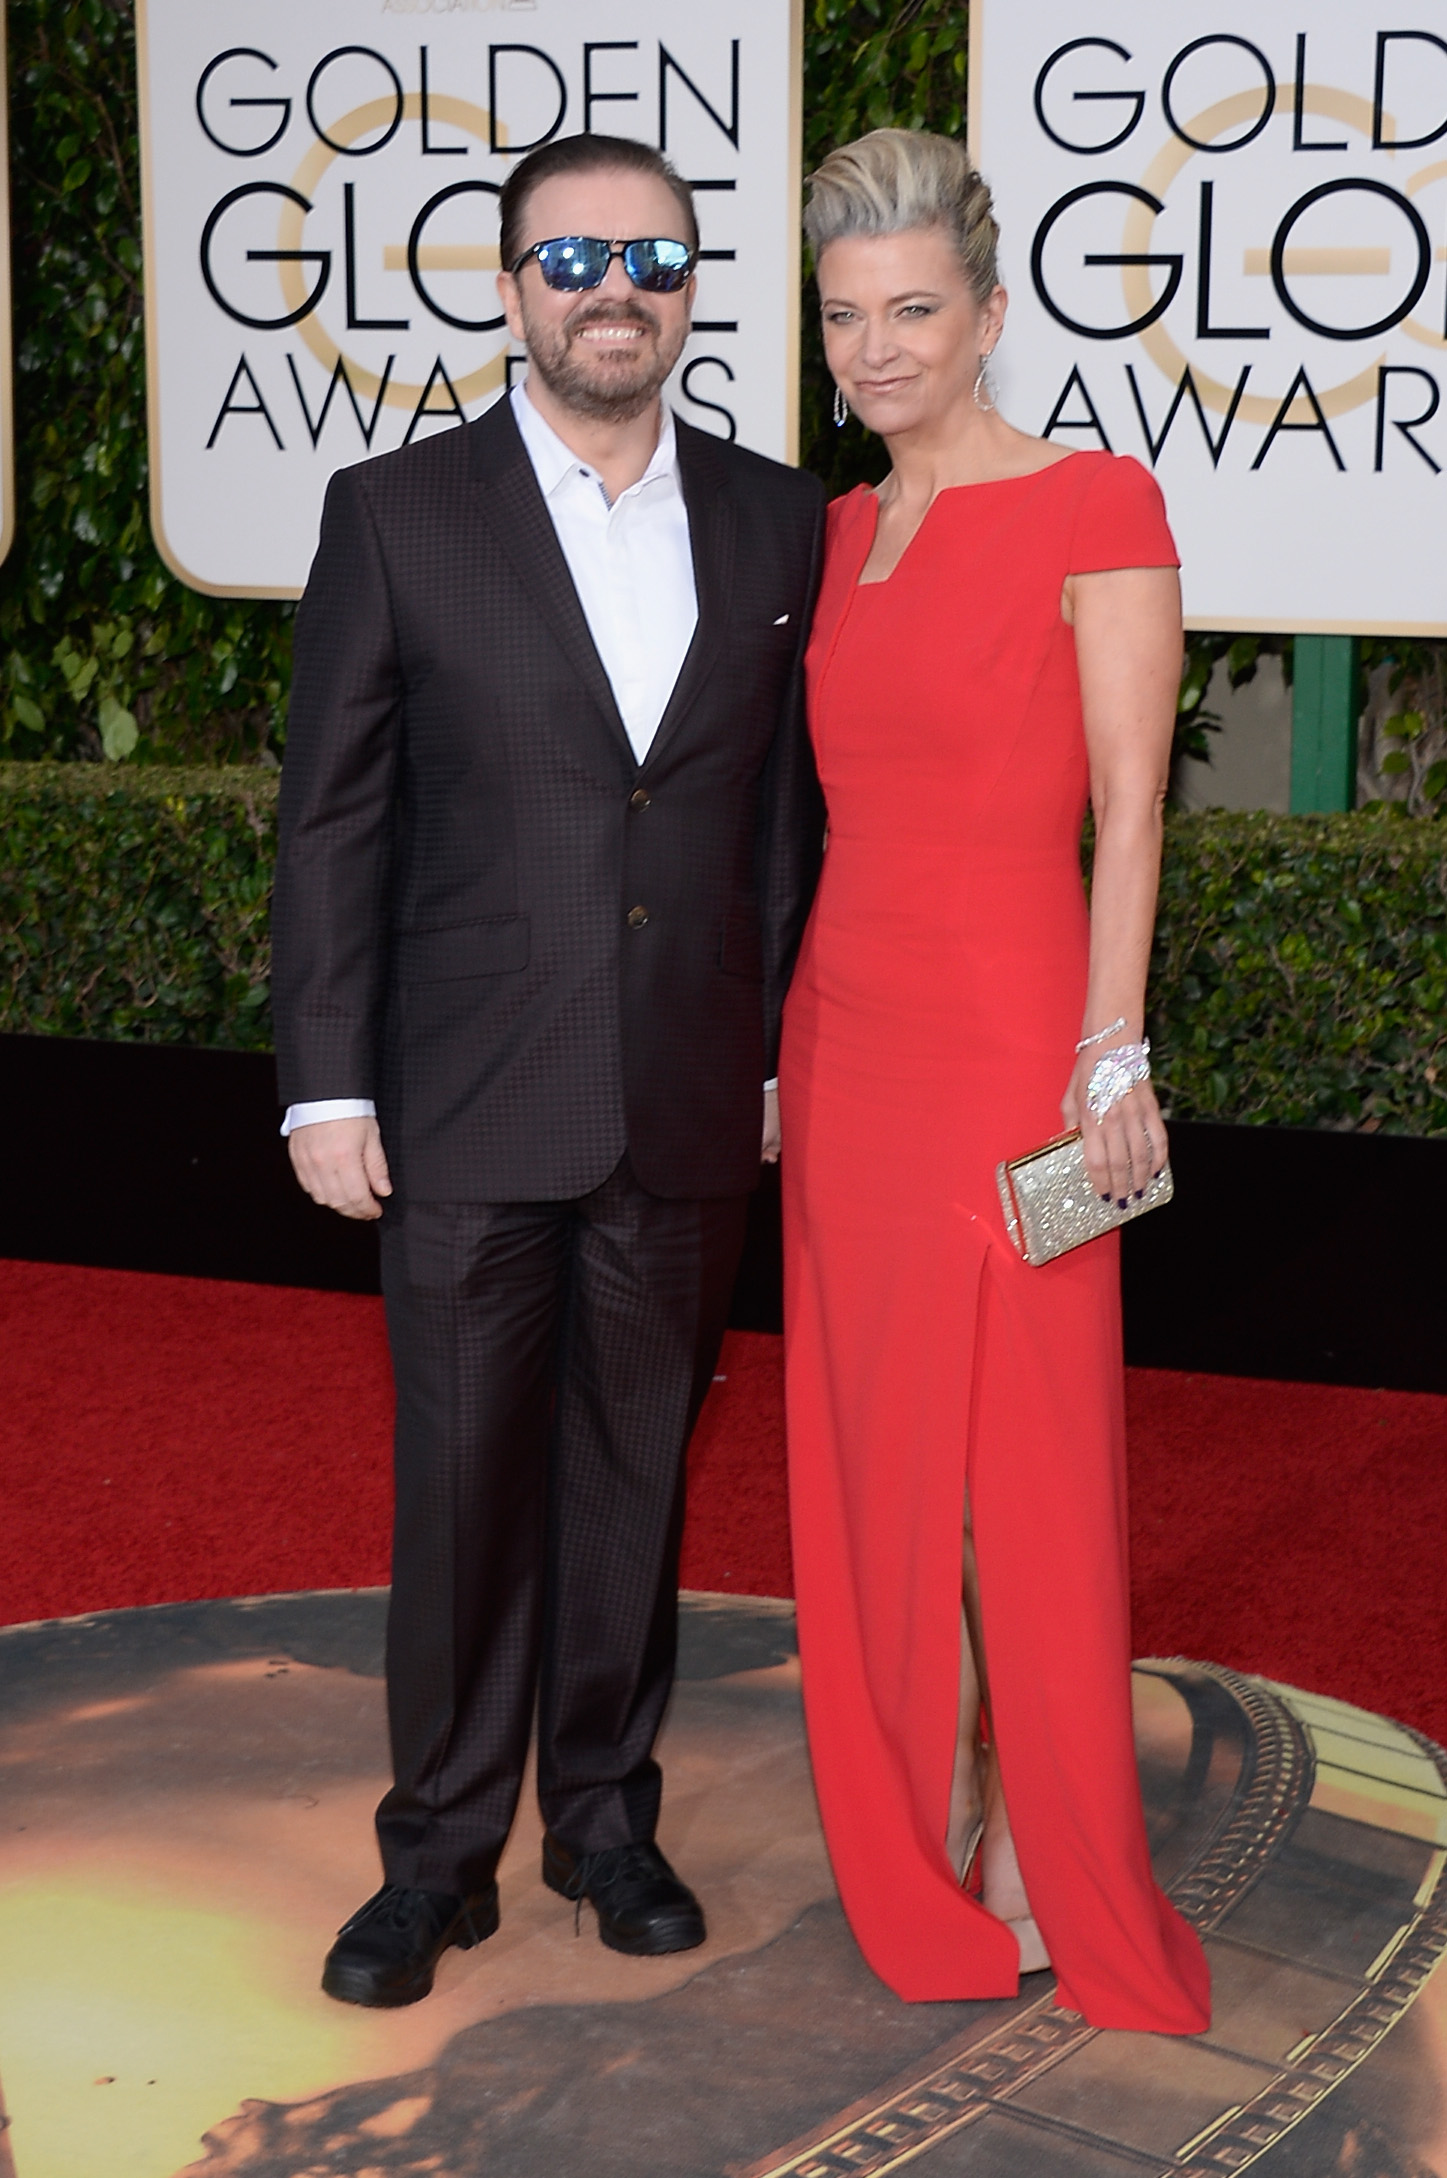 Ricky Gervais and Jane Fallon arrive to the 73rd Annual Golden Globe Awards on Jan. 10, 2016 in Beverly Hills.